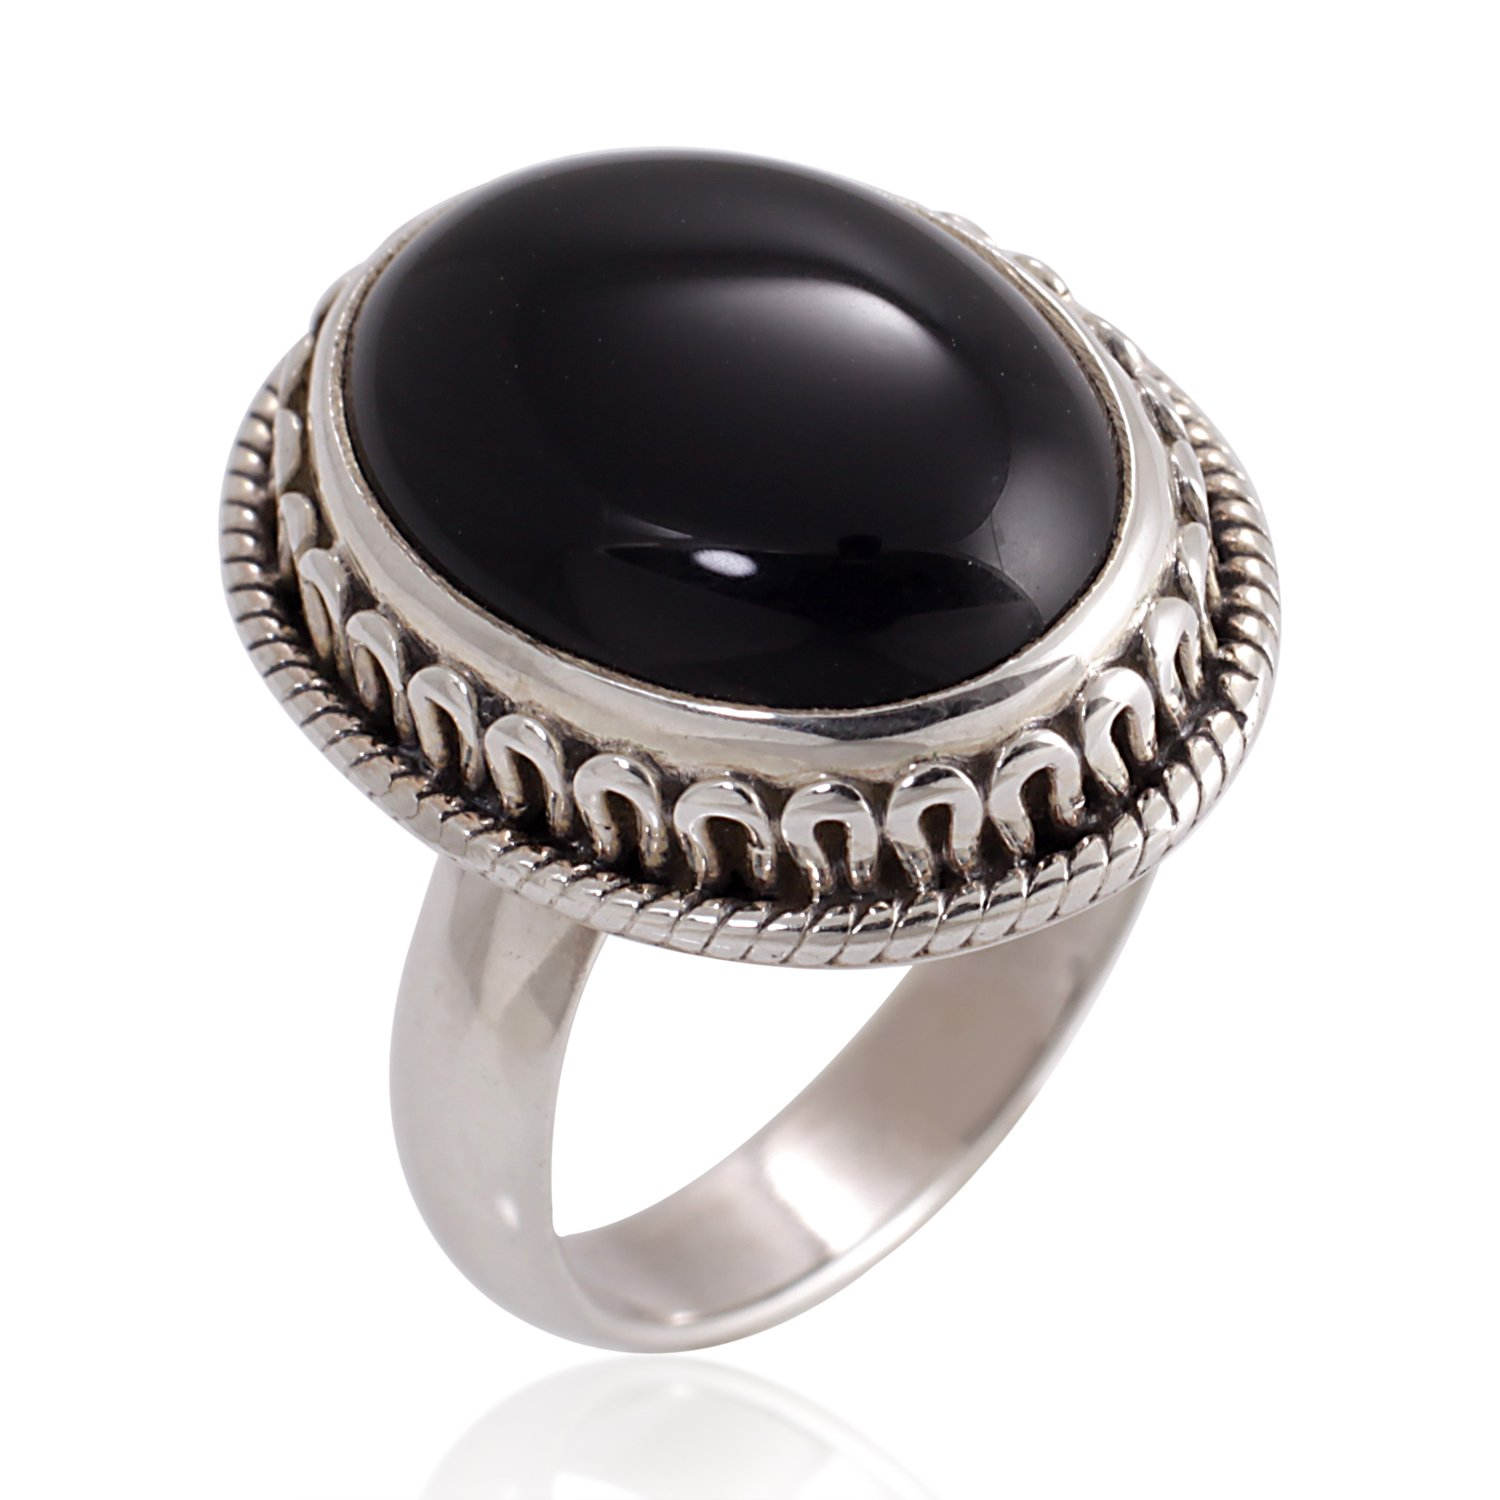 Chuvora 925 Oxidized Sterling Silver Natural Black Onyx Gemstone Oval Rope Edge Vintage Band Ring Size 7